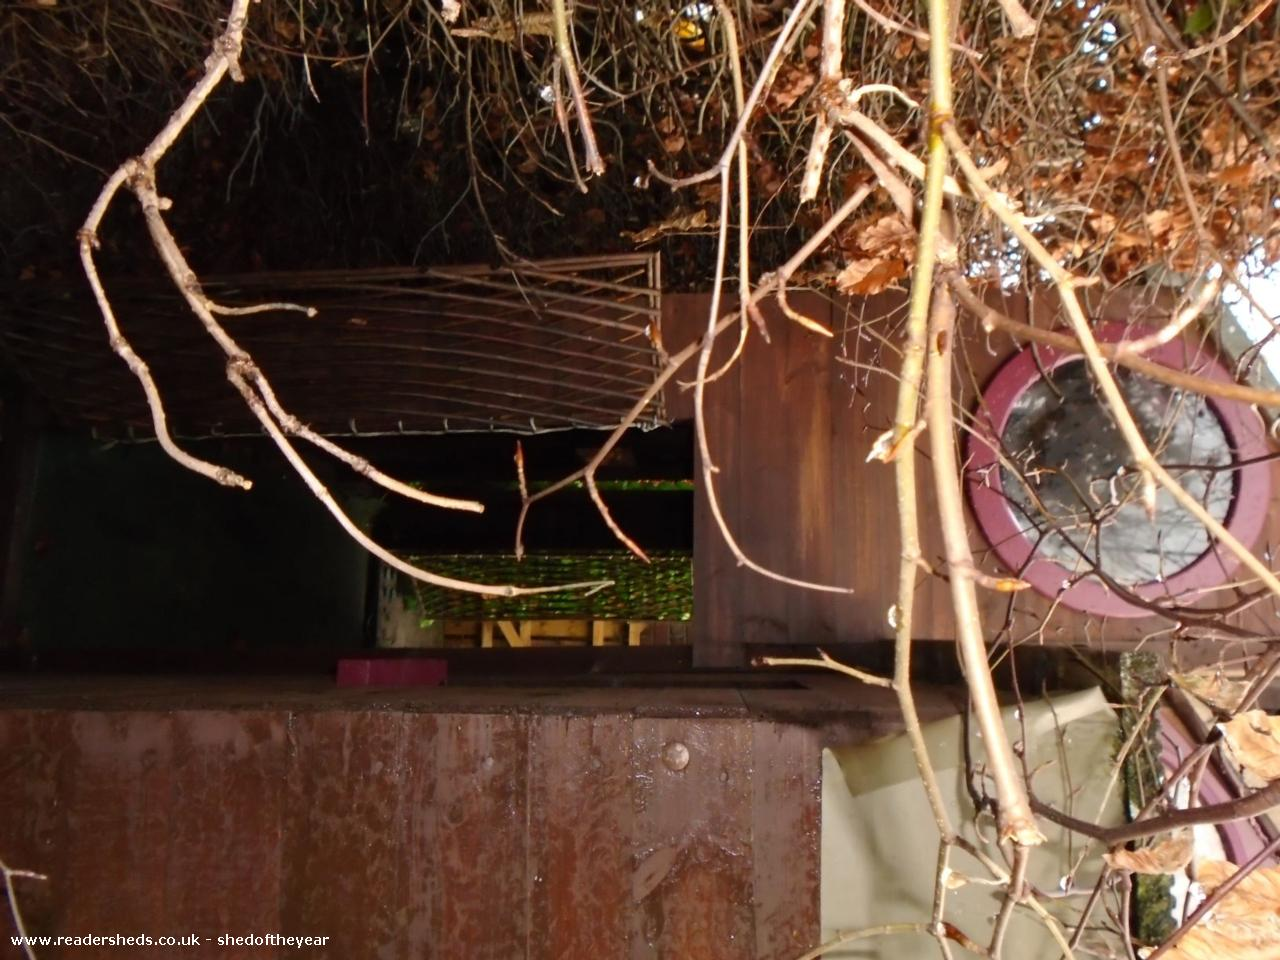 Photo of Ellie's Den, entry to Shed of the year-secret passage